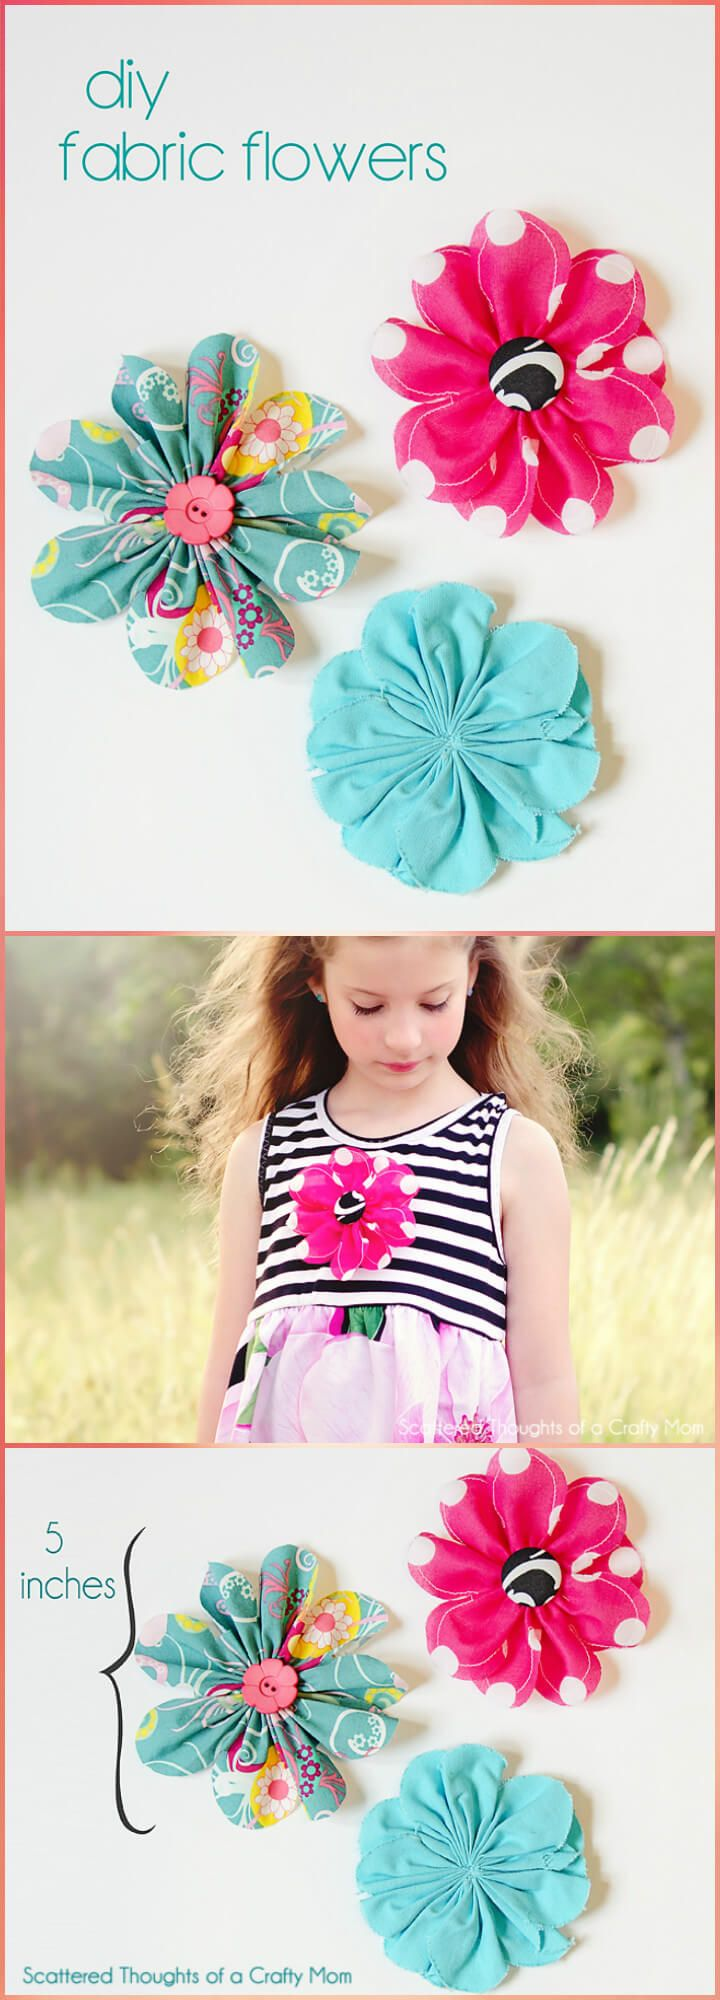 50 Easy Fabric Flowers Tutorial - Make Your Own Fabric Flowers - Page 5 of 10 - DIY & Crafts